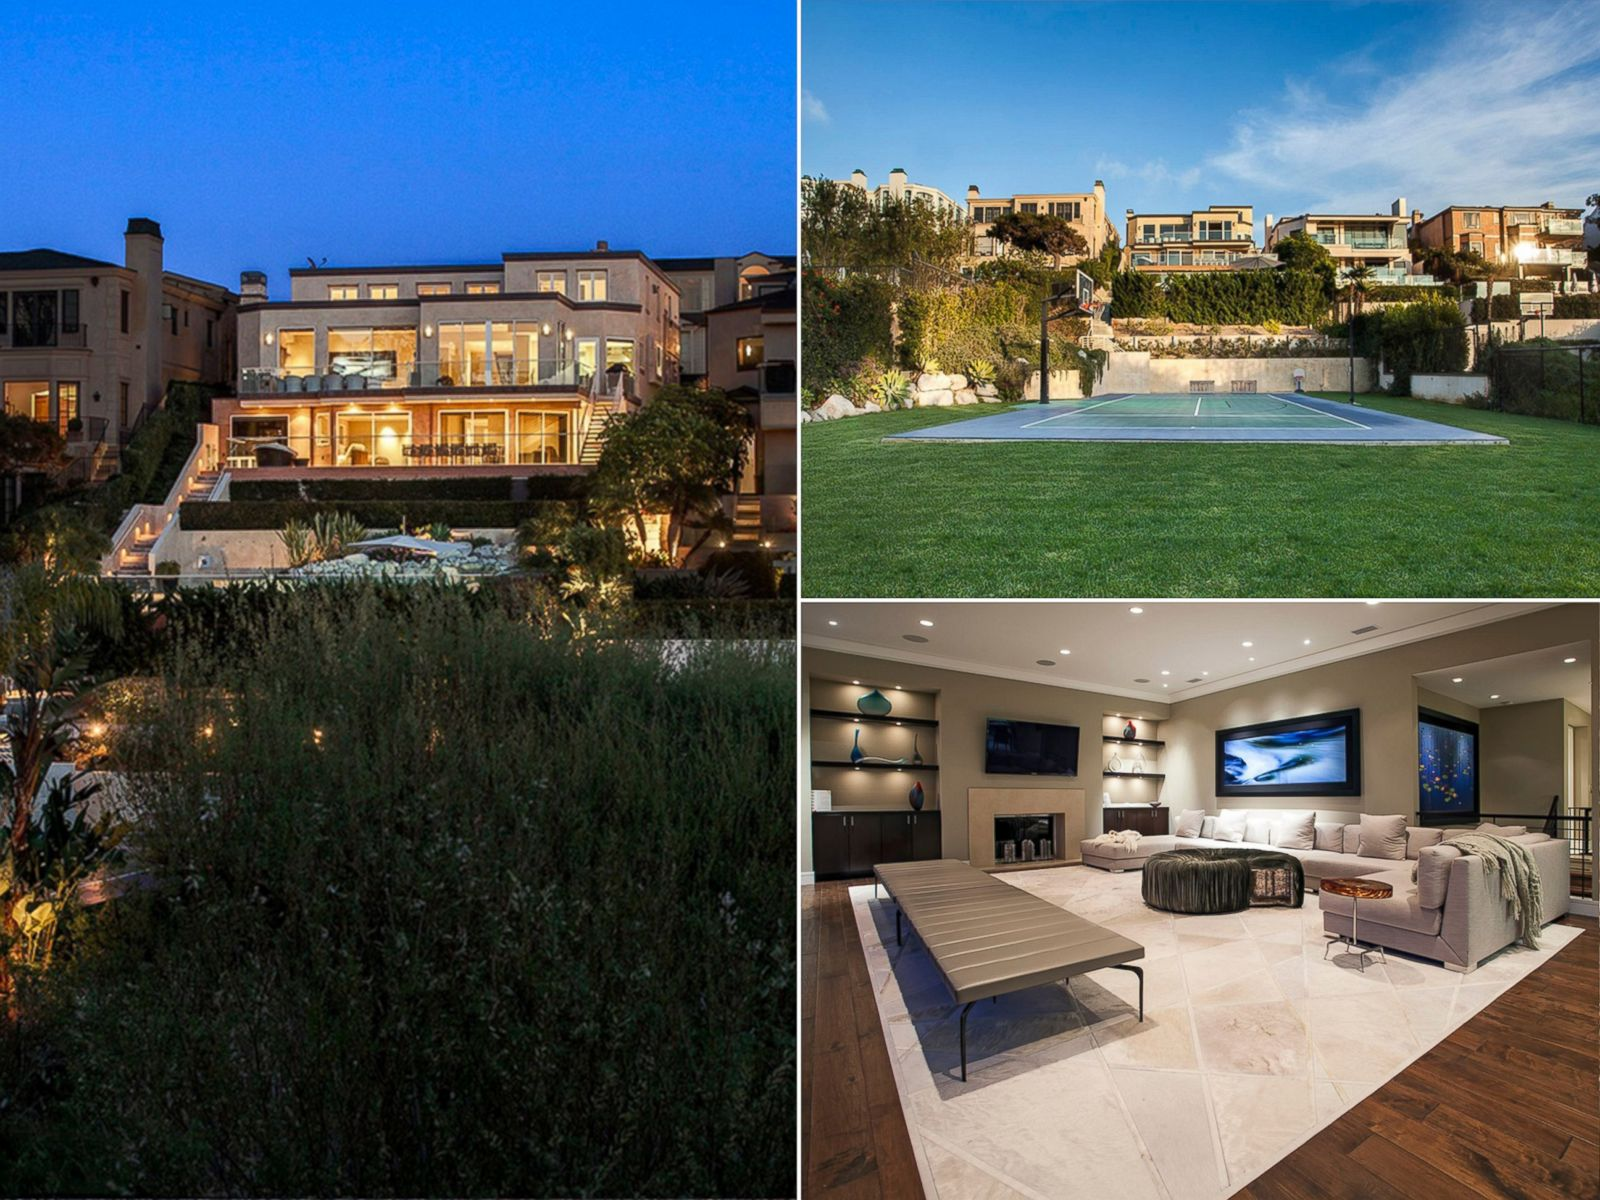 March Madness Homes With Basketball Courts For Sale